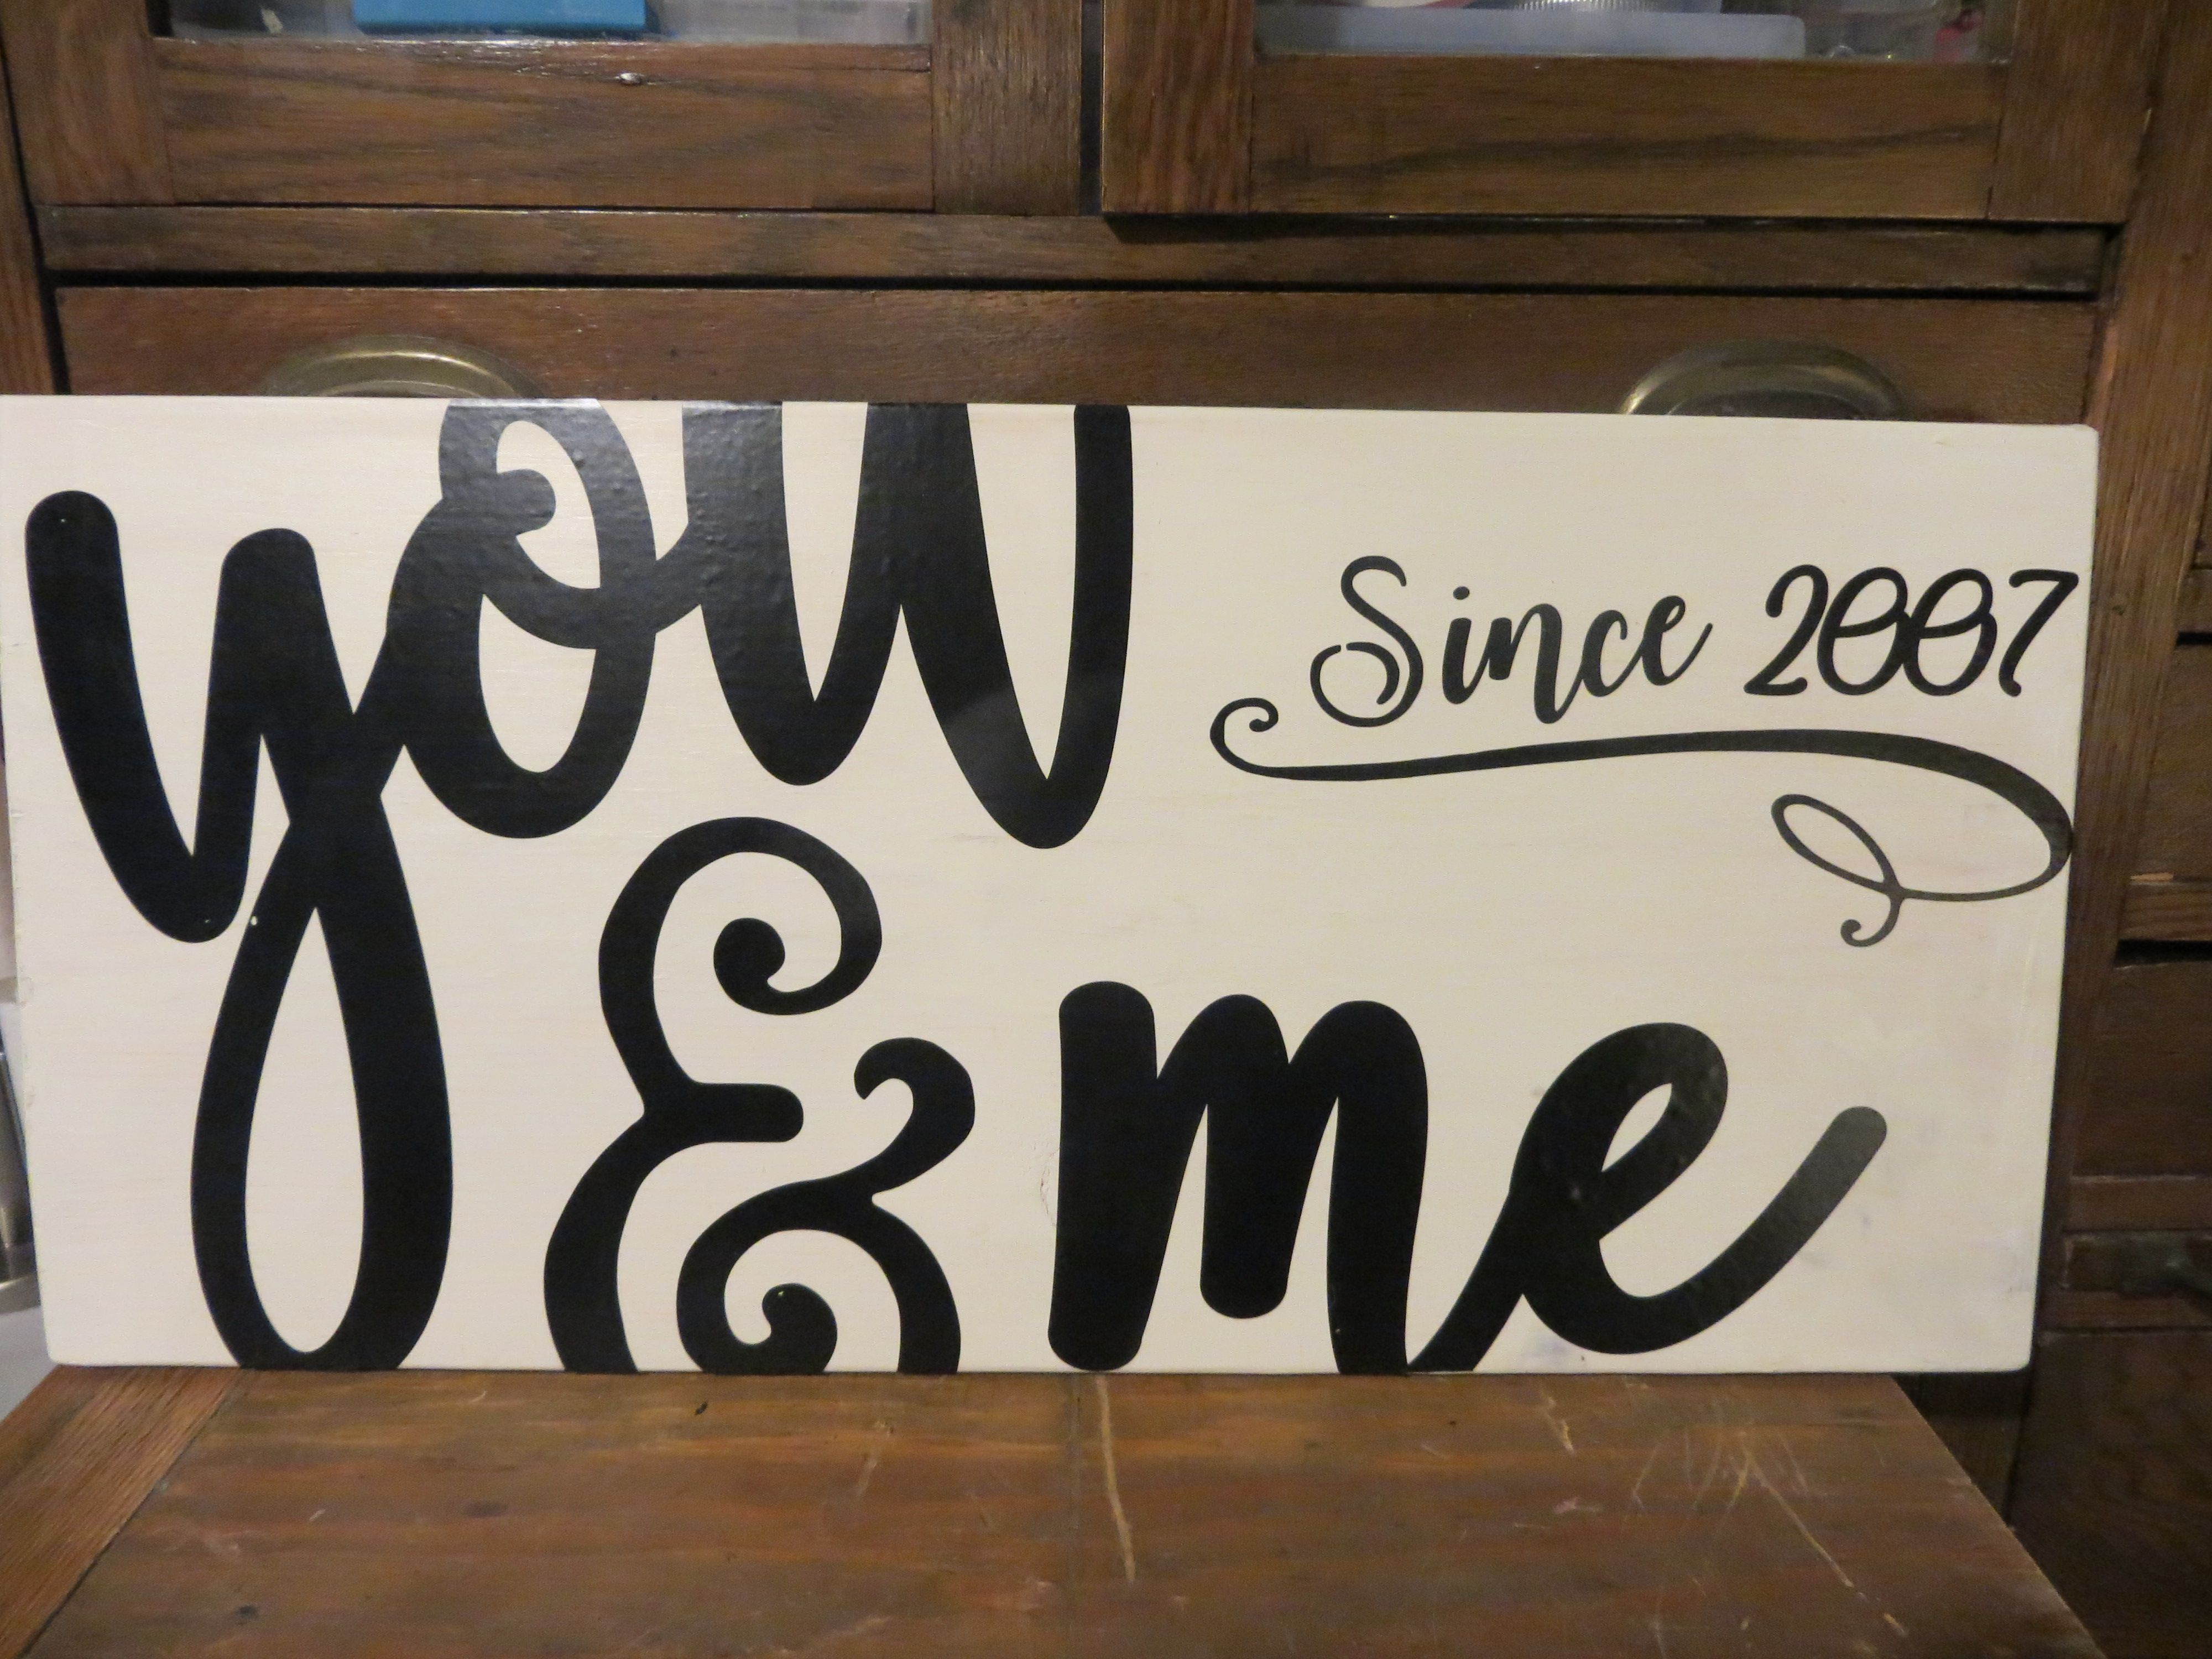 wooden sign vinyl letters you and me since xxxx